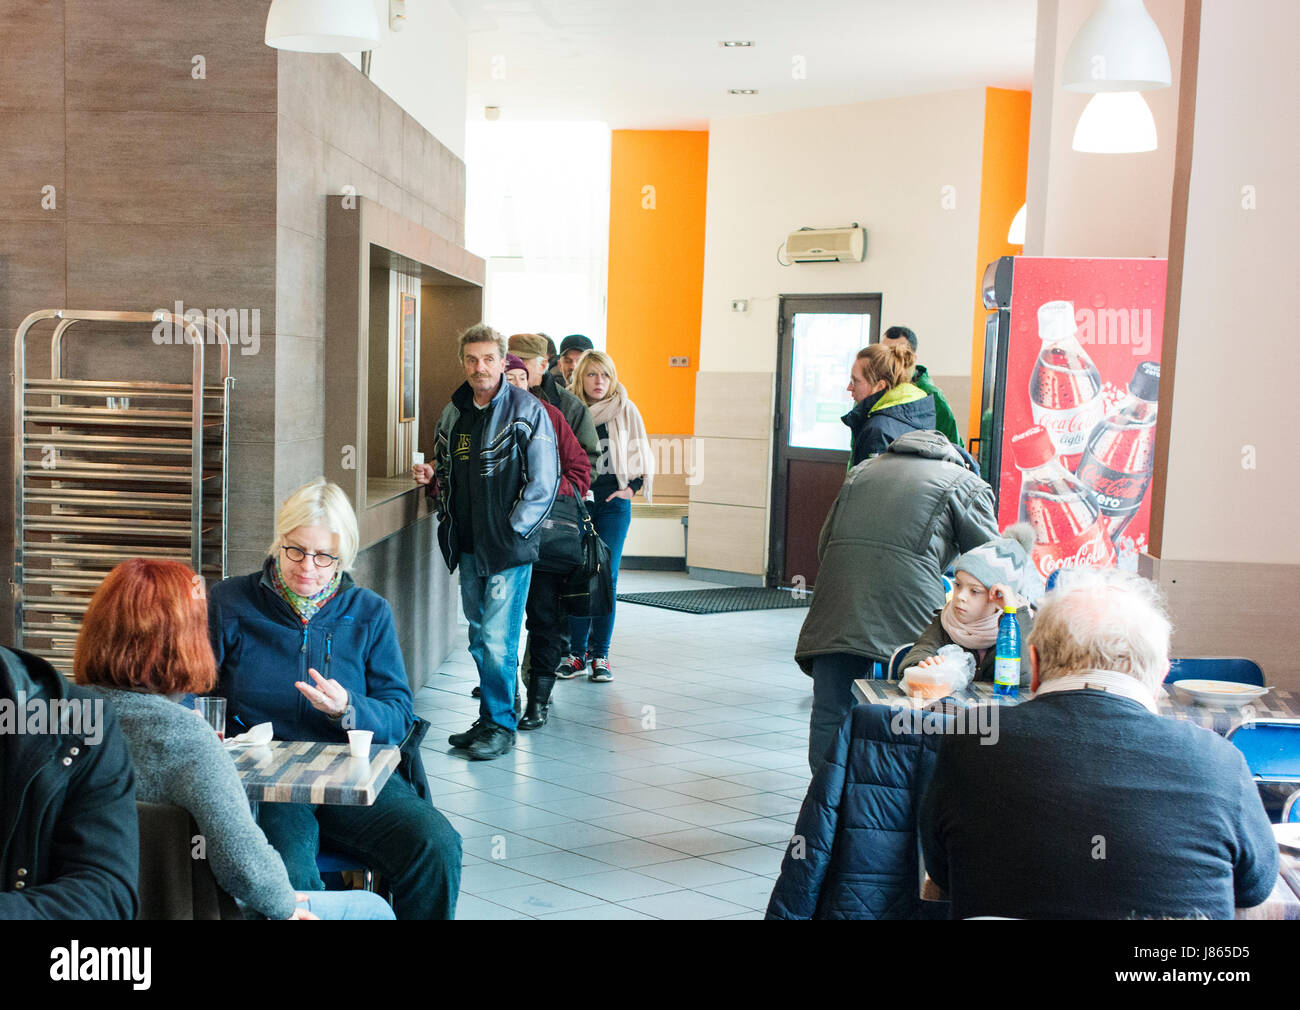 A low cost eating place in Warsaw's Praga district known as a milk bar. - Stock Image